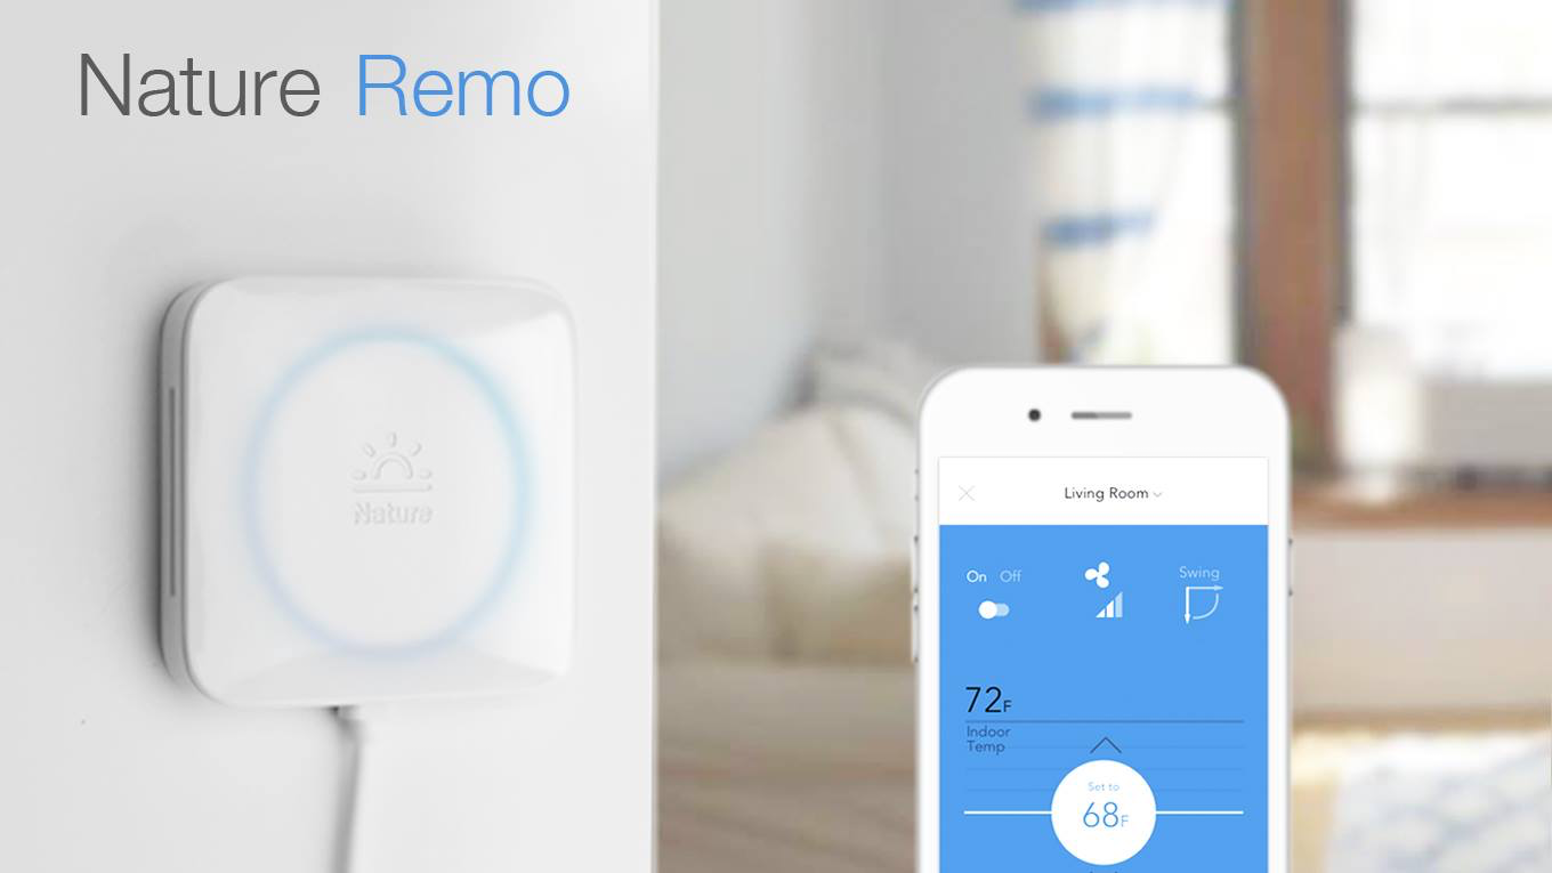 Let Remo take control of your air conditioner and save energy with convenience and comfort.